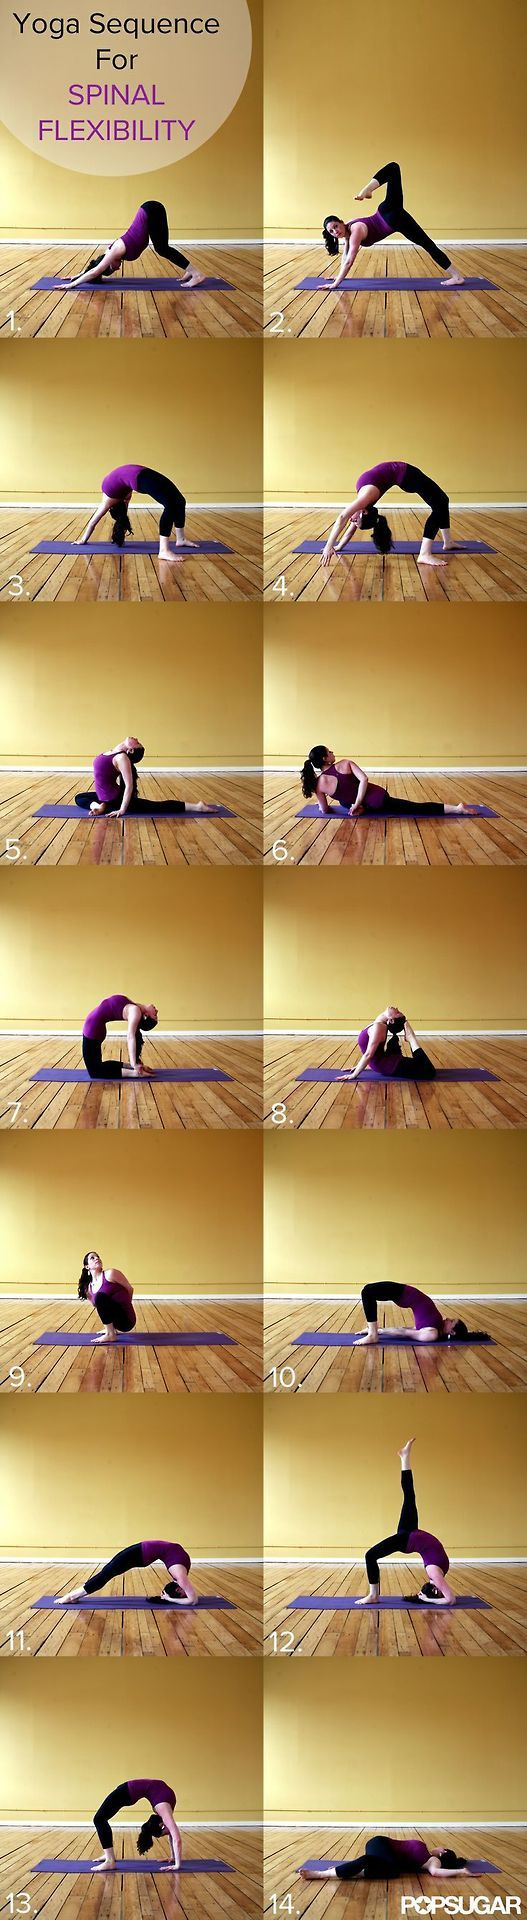 Try this yoga sequence when improving spinal flexibility.